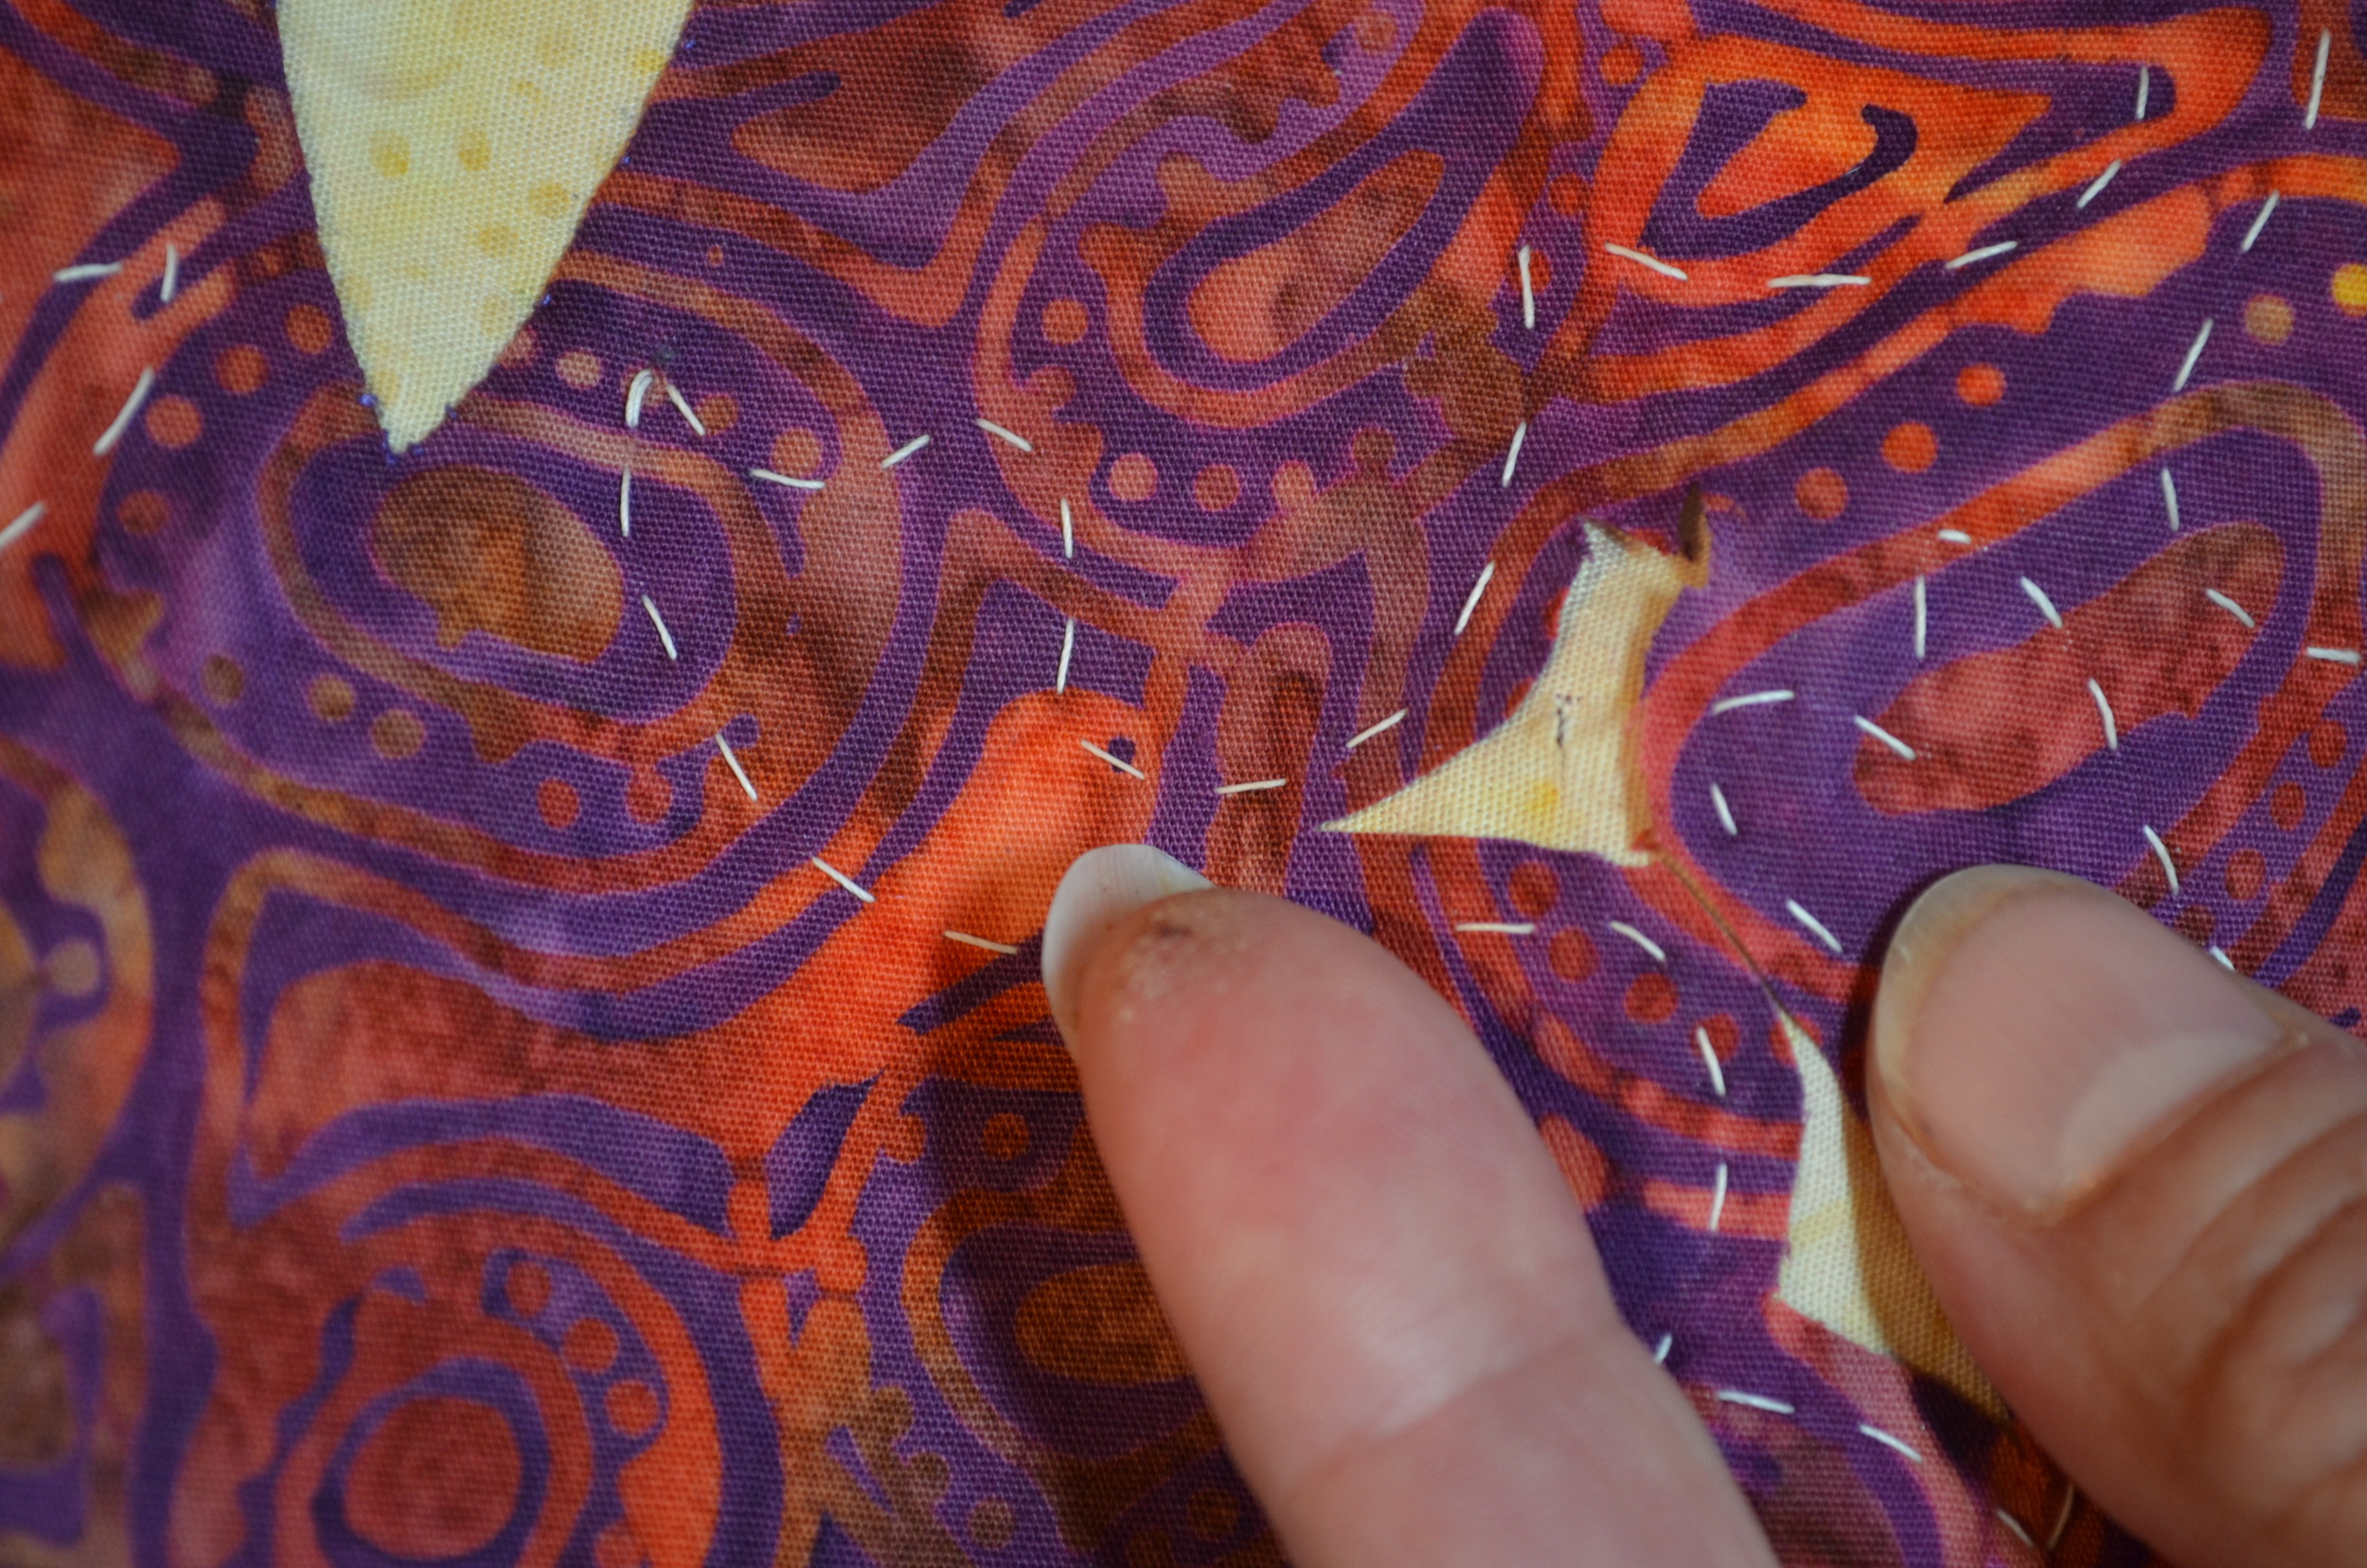 OOPS! I snipped my background fabric when trimming the top.